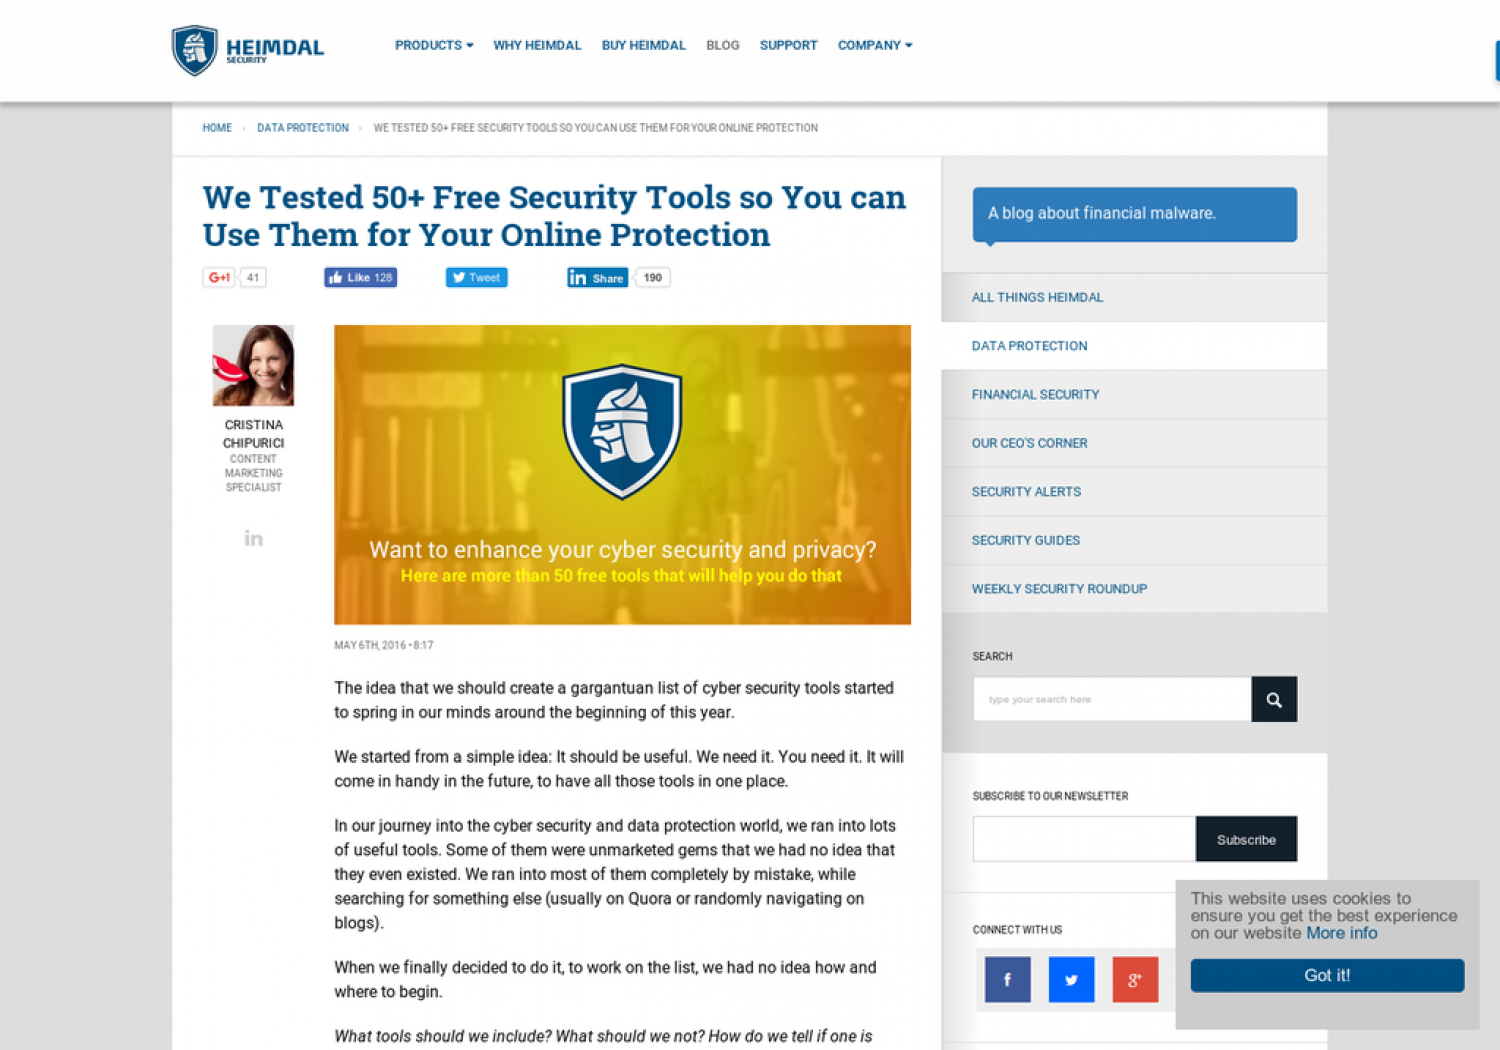 We Tested 50+ Free Security Tools so You can Use Them for Your Online Protection Infographic